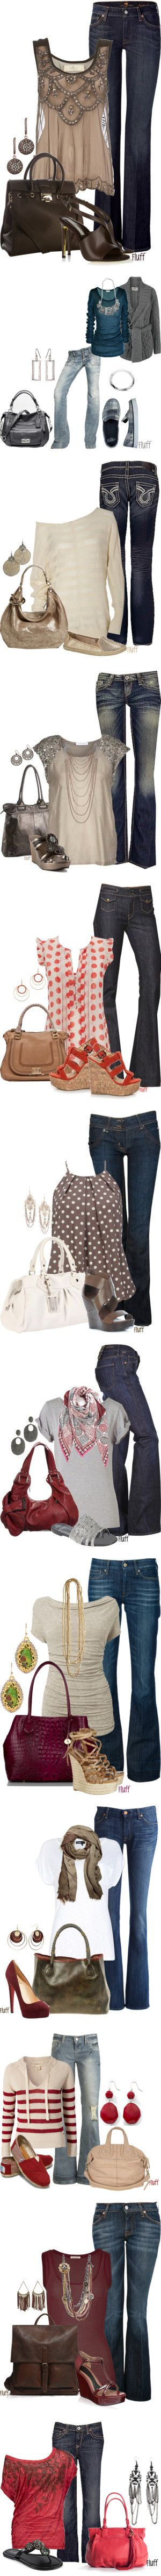 Cute!: A Mini-Saia Jeans, Dreams Closet, Style, Cute Outfits, Cute Ideas, Jeans Sets, Blue Jeans Outfits, Blue Jean Outfits, Outfits Ideas